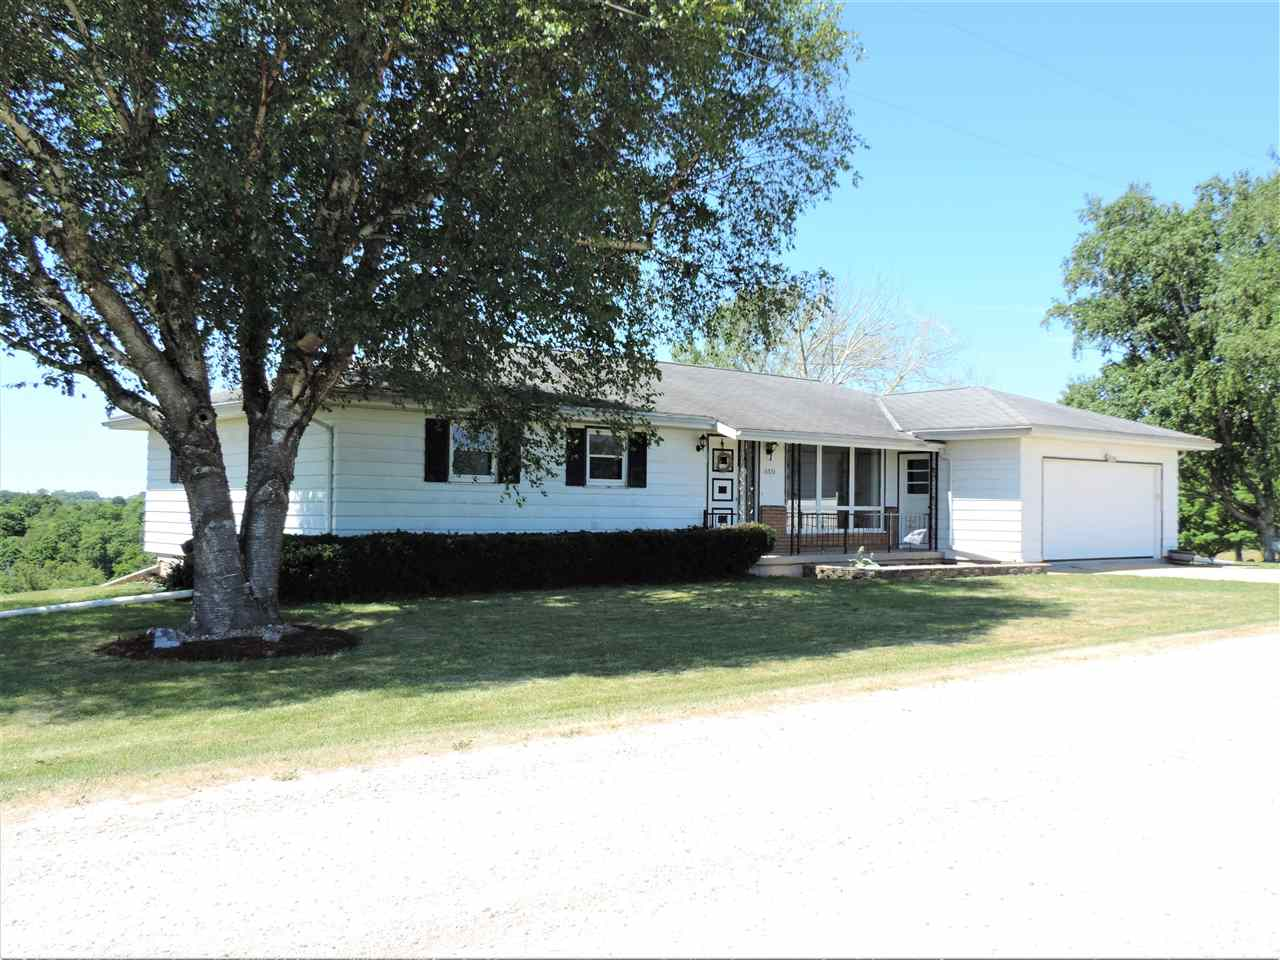 16836 County Road NN, Willow, Wisconsin 53581, 4 Bedrooms Bedrooms, ,2 BathroomsBathrooms,Single Family,For Sale,County Road NN,1912140